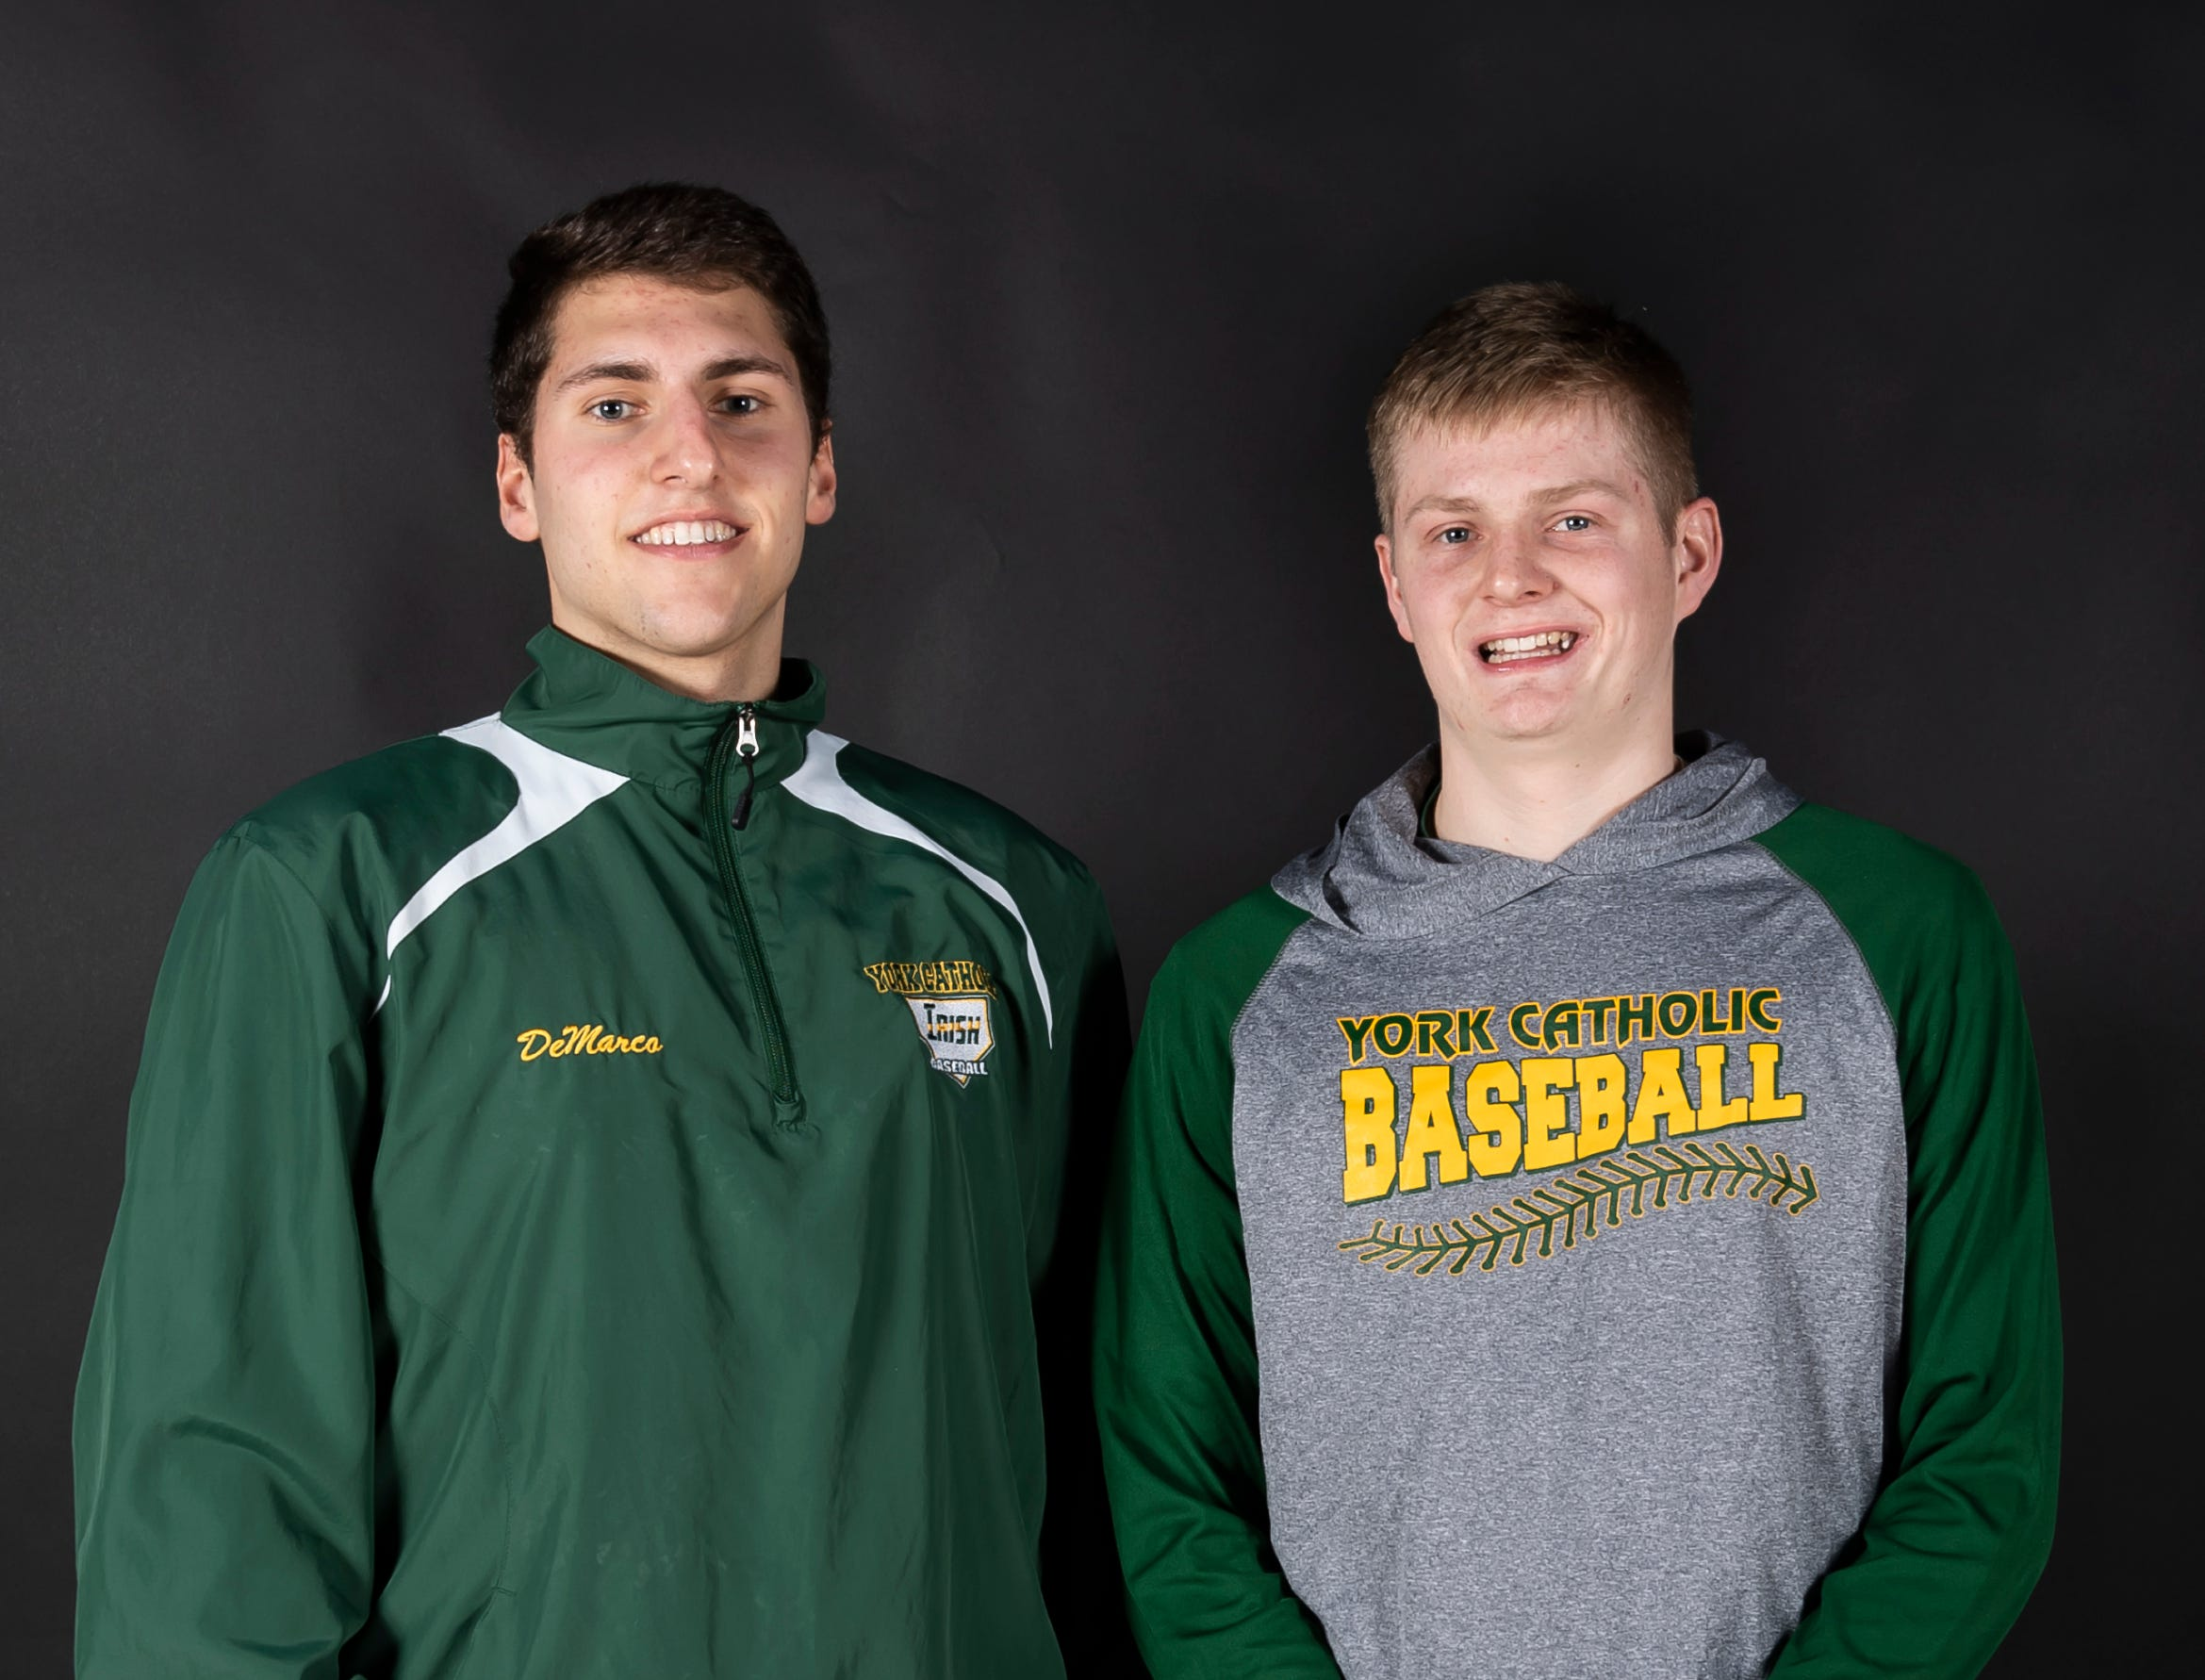 (From left) York Catholic baseball players Nick DeMarco and Bryan Bullen pose in the GameTimePA photo booth during spring sports media day in York Sunday, March 10, 2019.